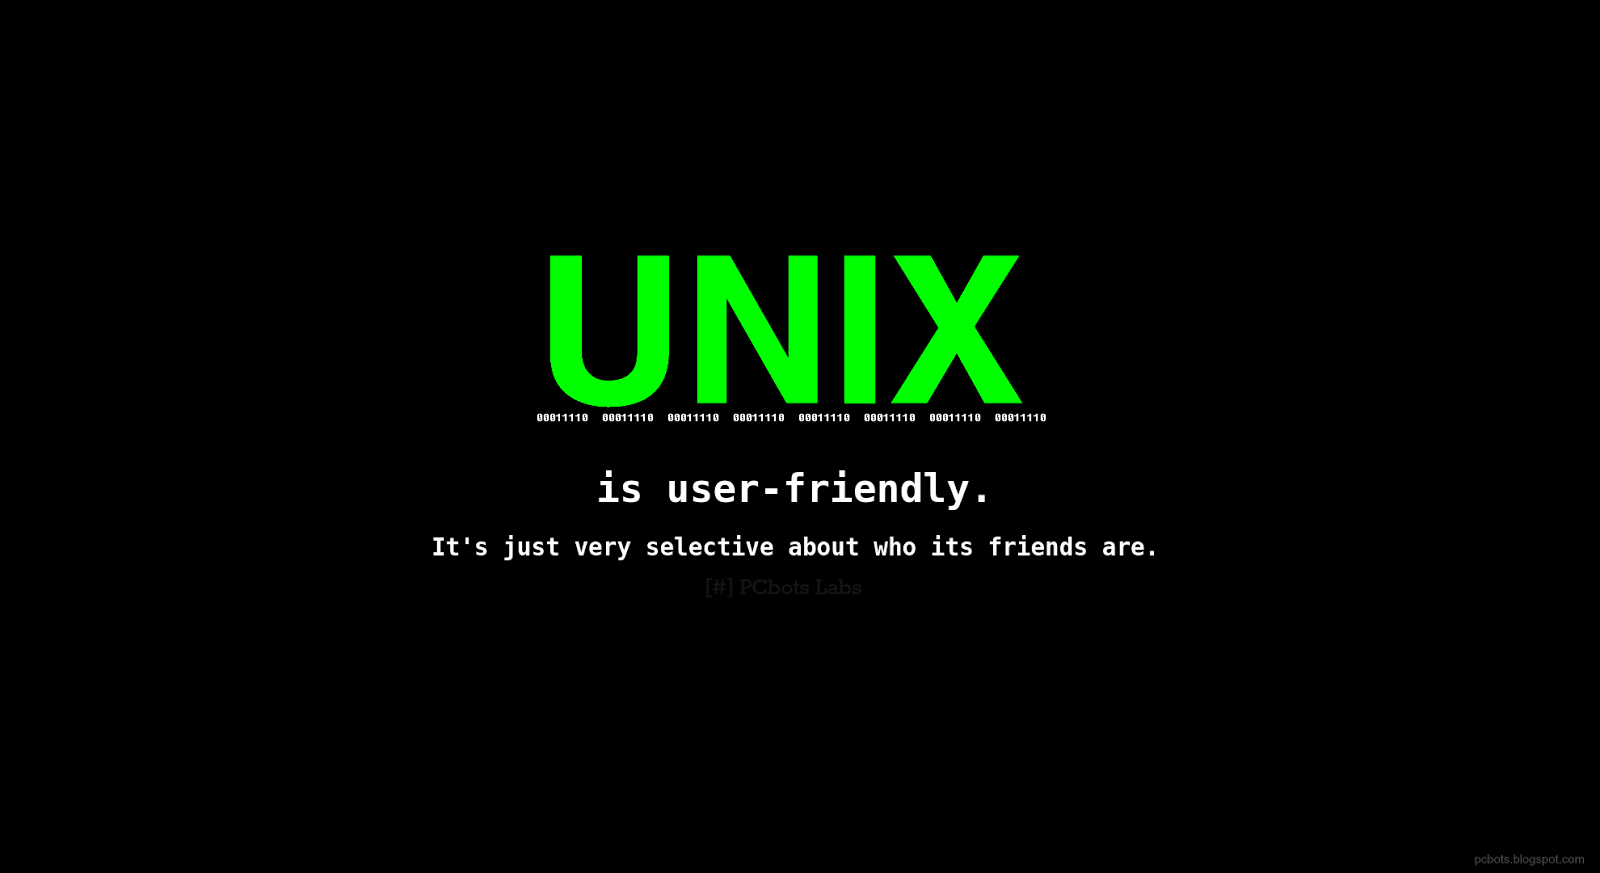 UNIX Wallpapers